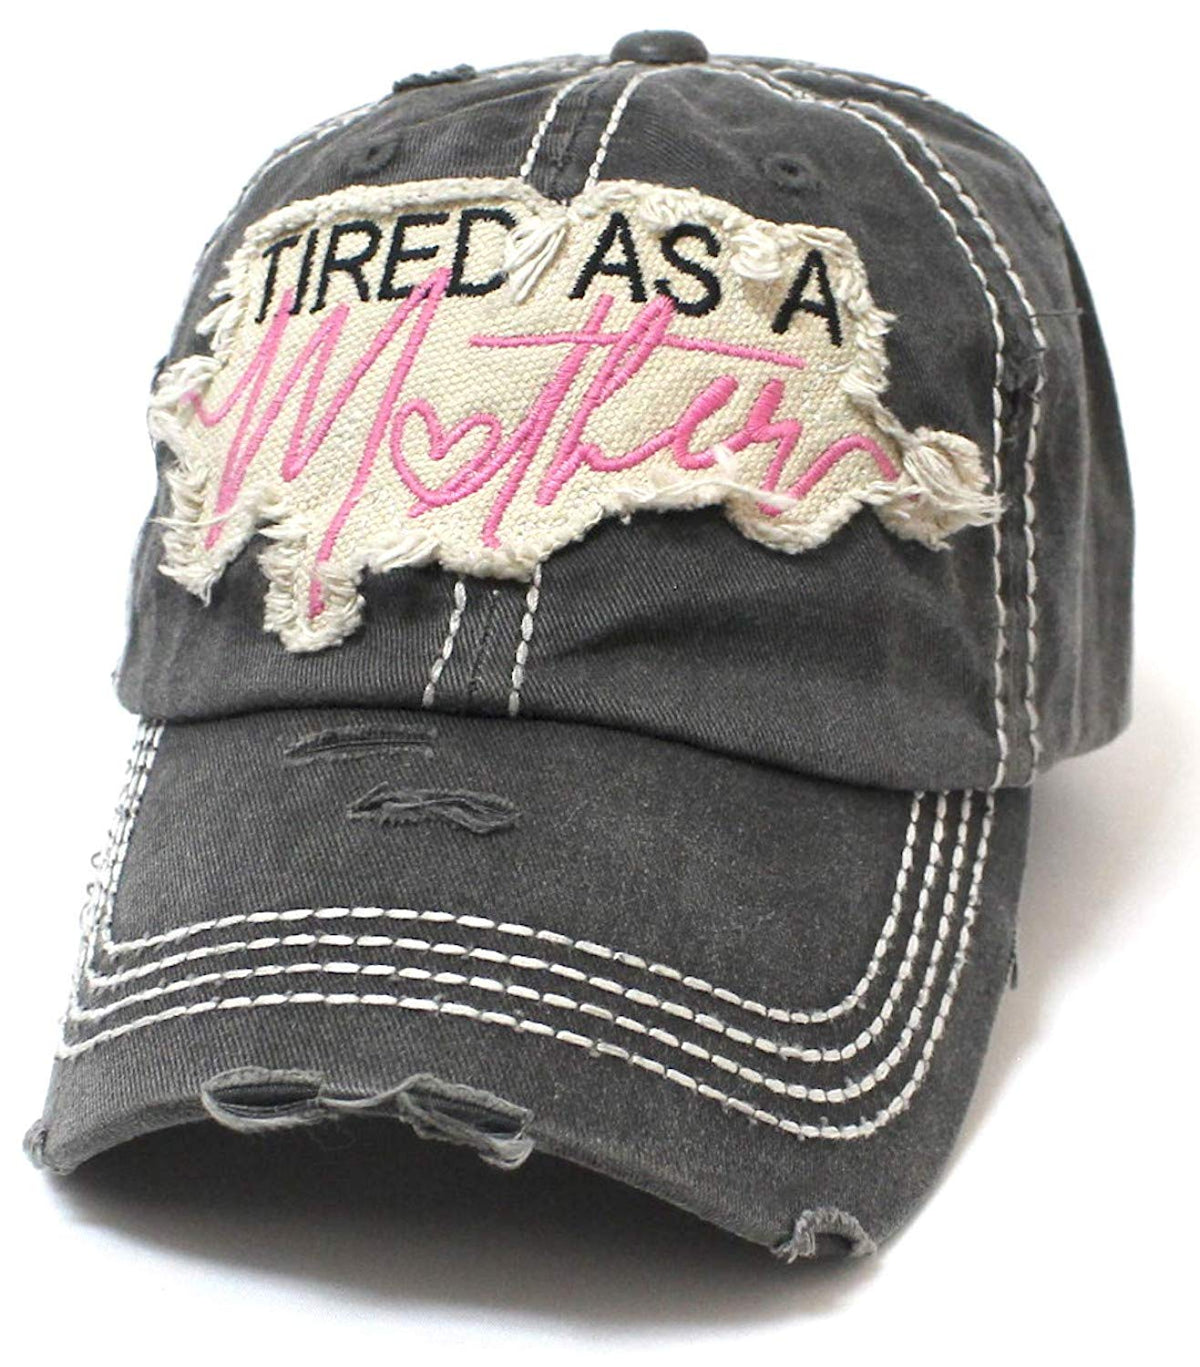 Black Tired AS A Mother Patch Embroidery Heart Cap - Caps 'N Vintage